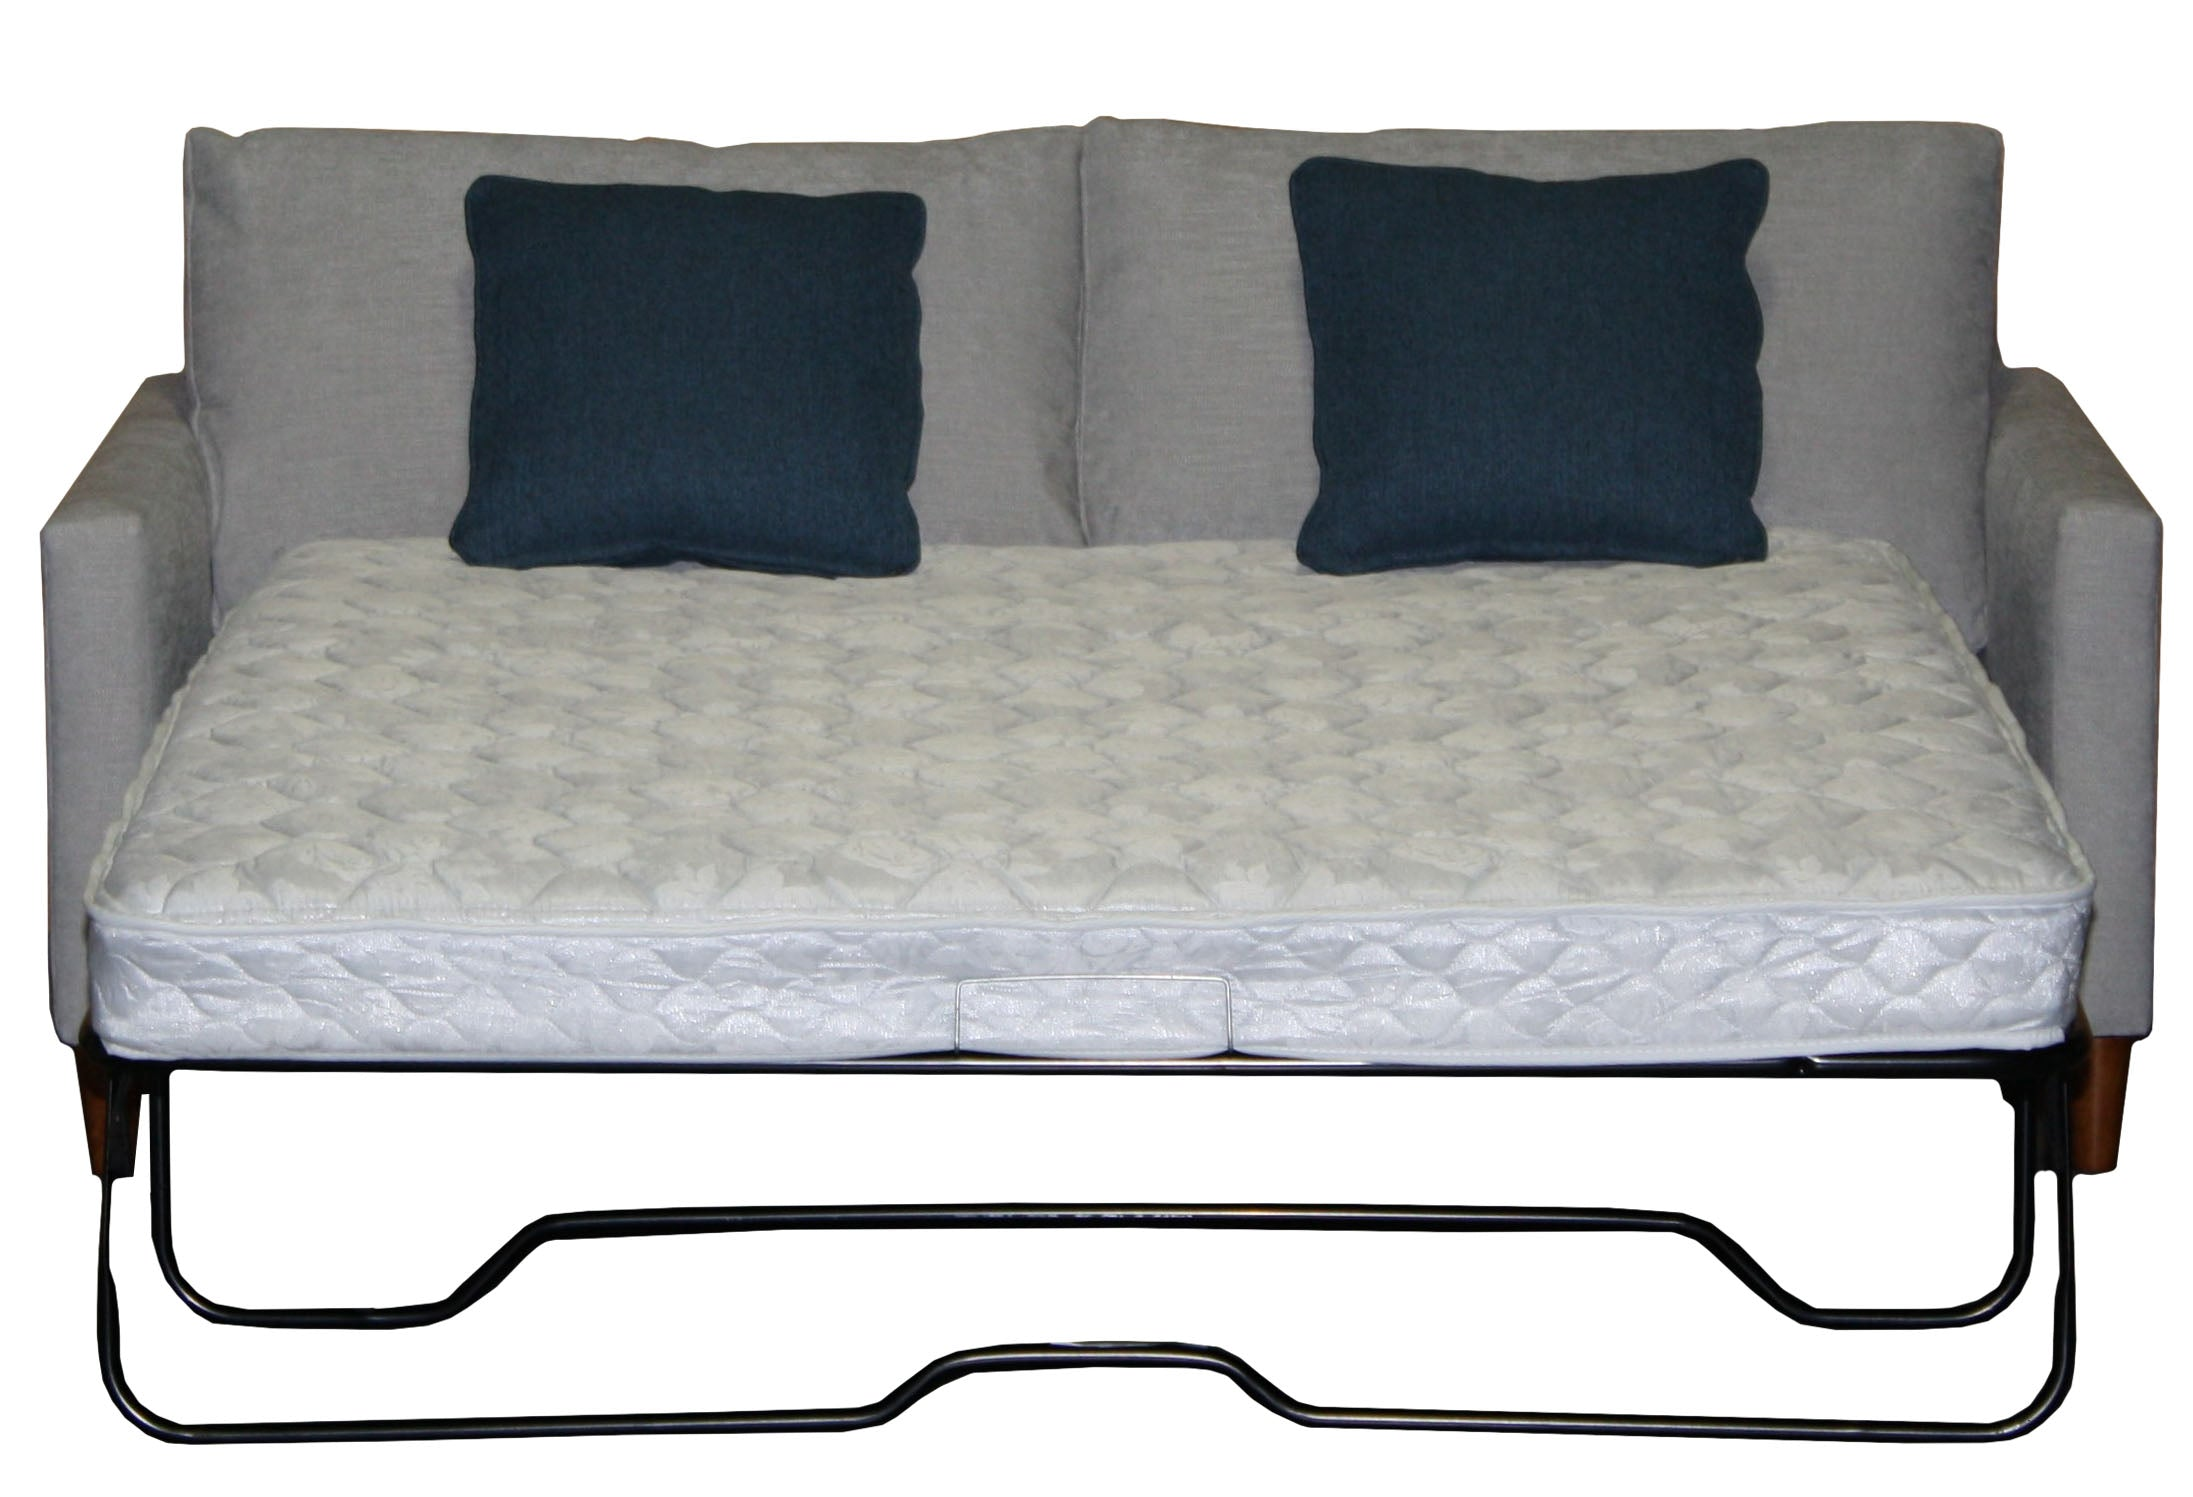 New Non Toxic Bowie Queen Sleeper From Endicott Home